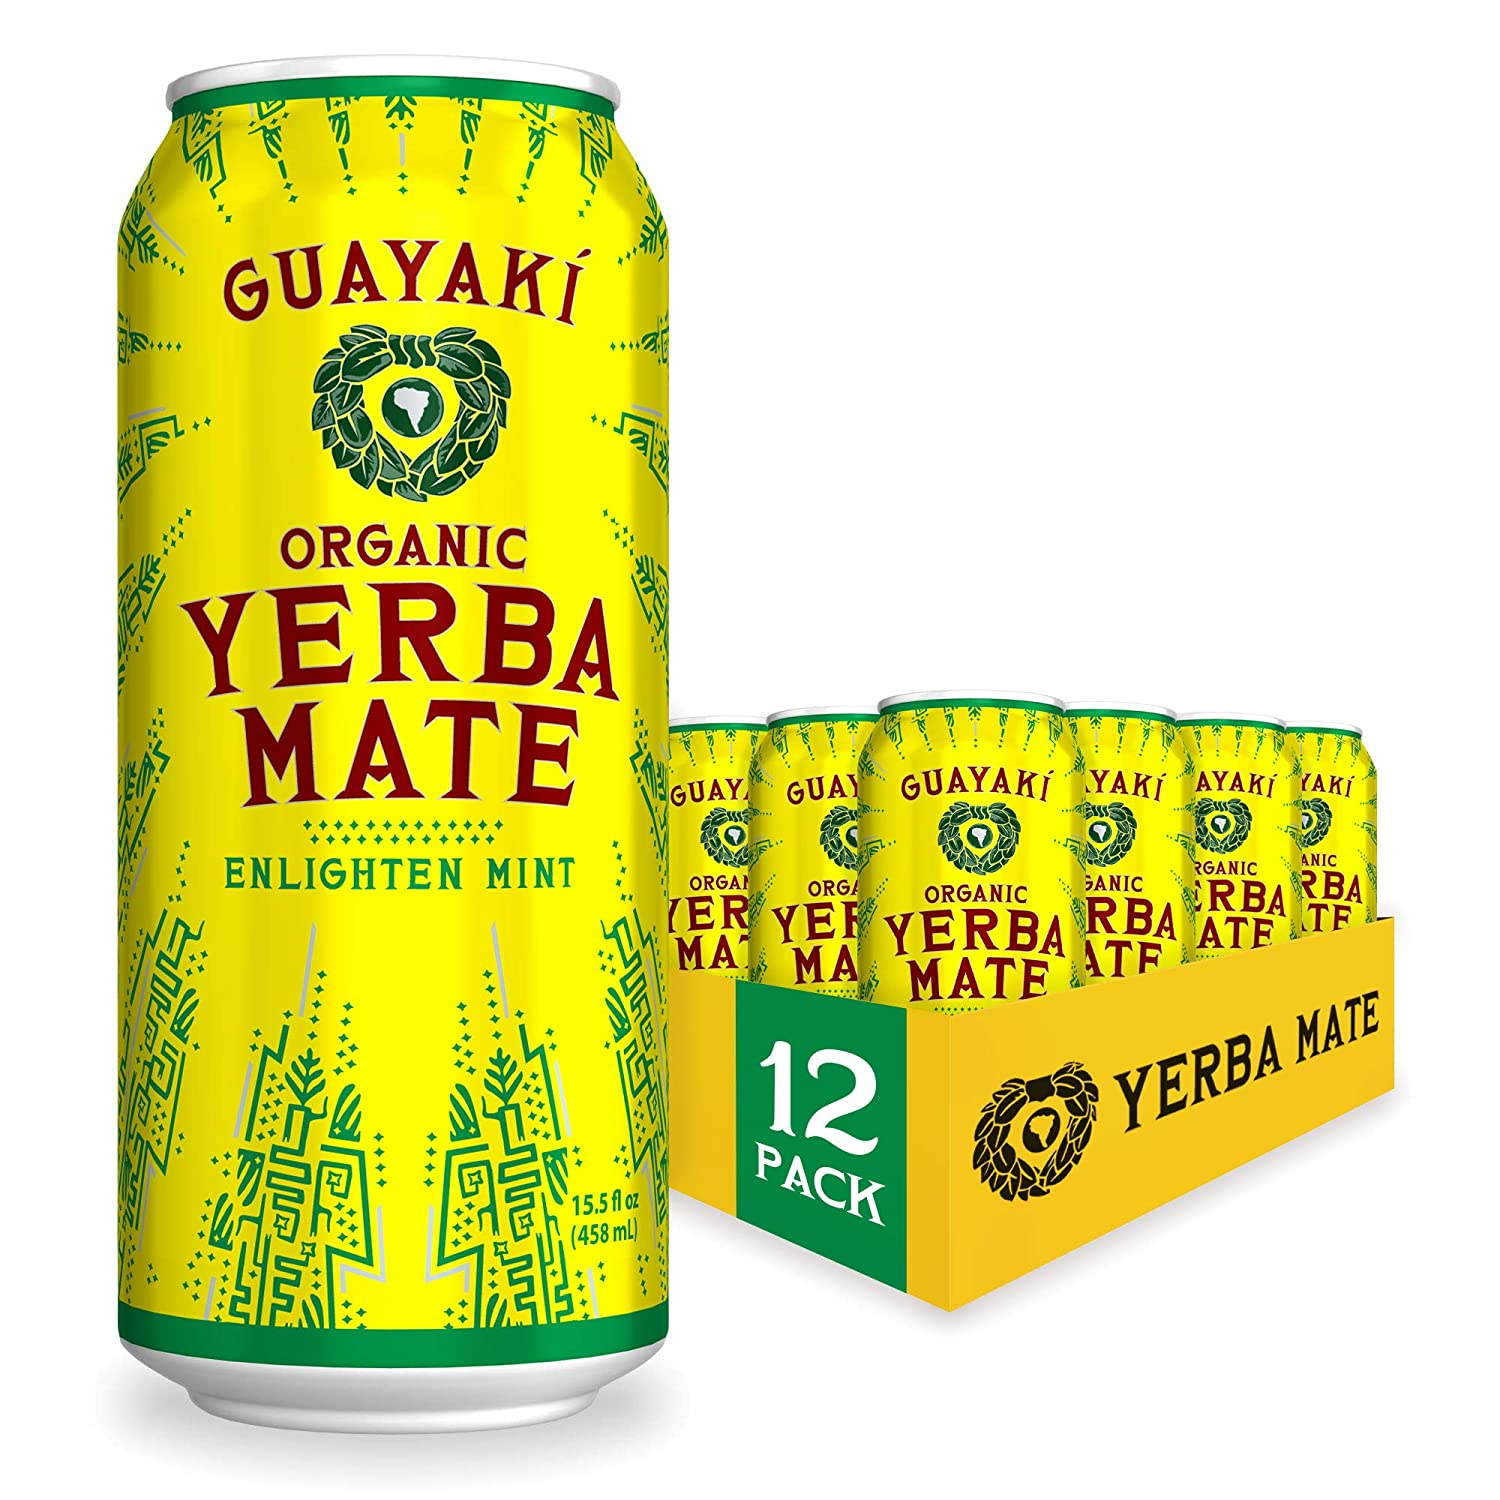 Guayaki Yerba Mate, Organic Drink, Enlighten Mint, 15.5 Ounce Cans (Pack of 12), 150mg Caffeine, Alternative to Coffee, Tea and Energy Drinks